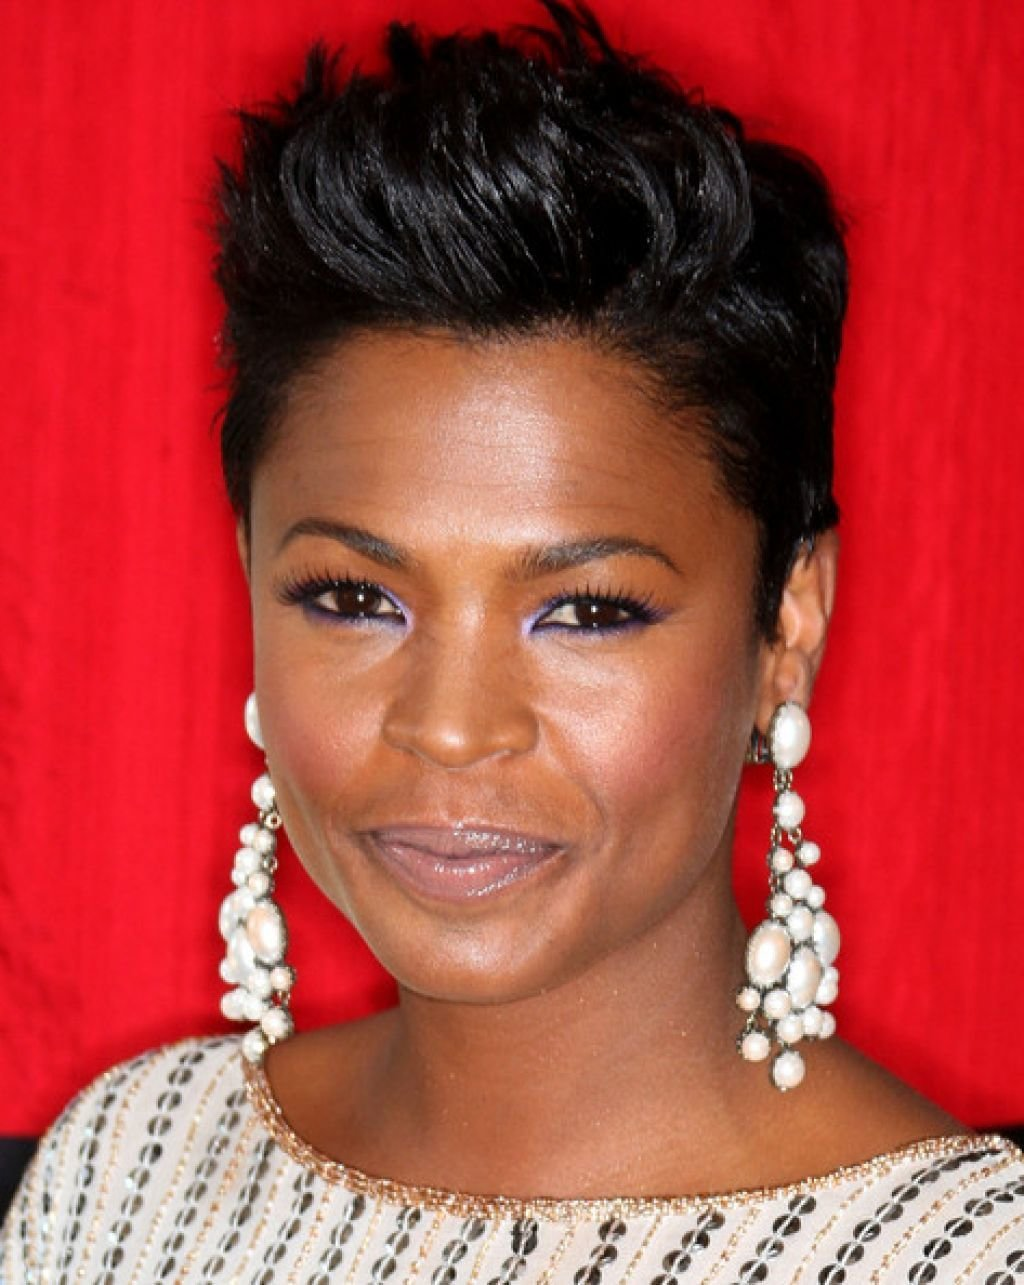 The Best 27 Short Hairstyles And Haircuts For Black Women Of Class Pictures